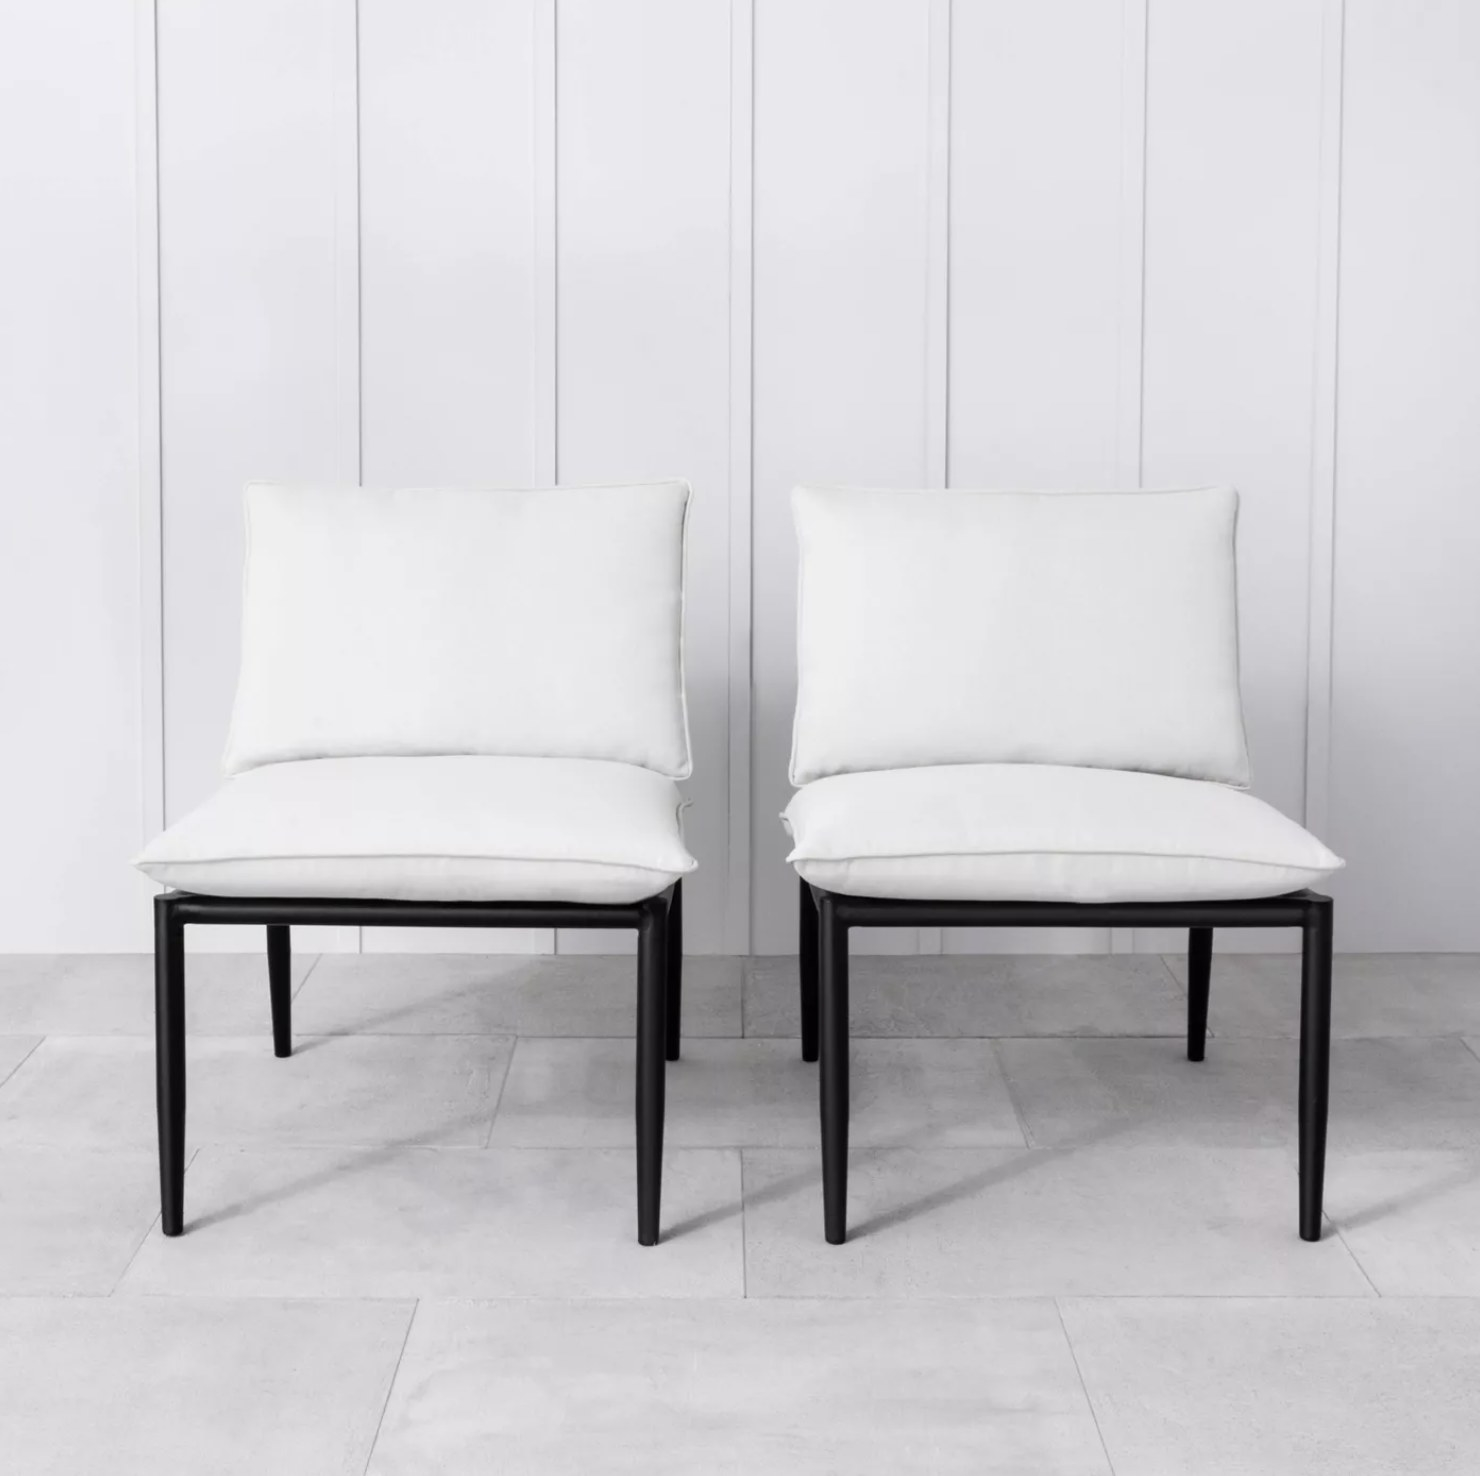 A set of two black patio chairs with white cushions